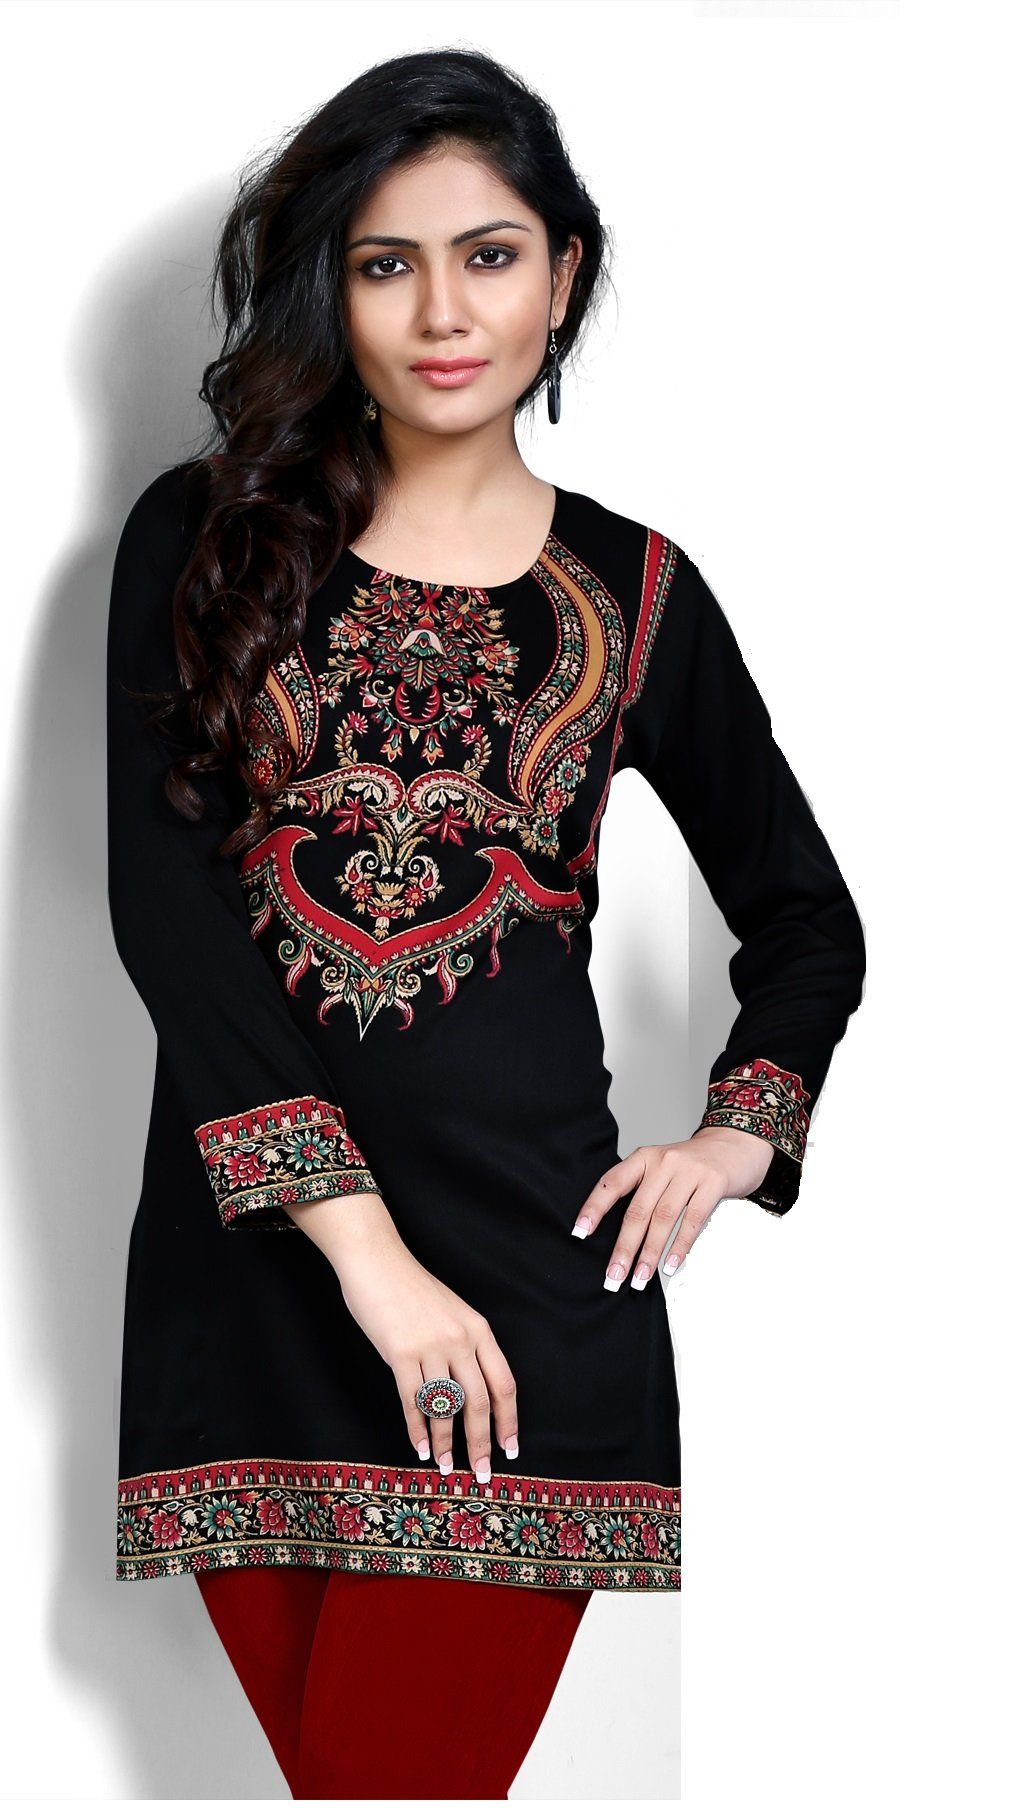 9188bbd3322 T912XL Indian Tunic Top Womens Kurti Printed Blouse India Clothing ...